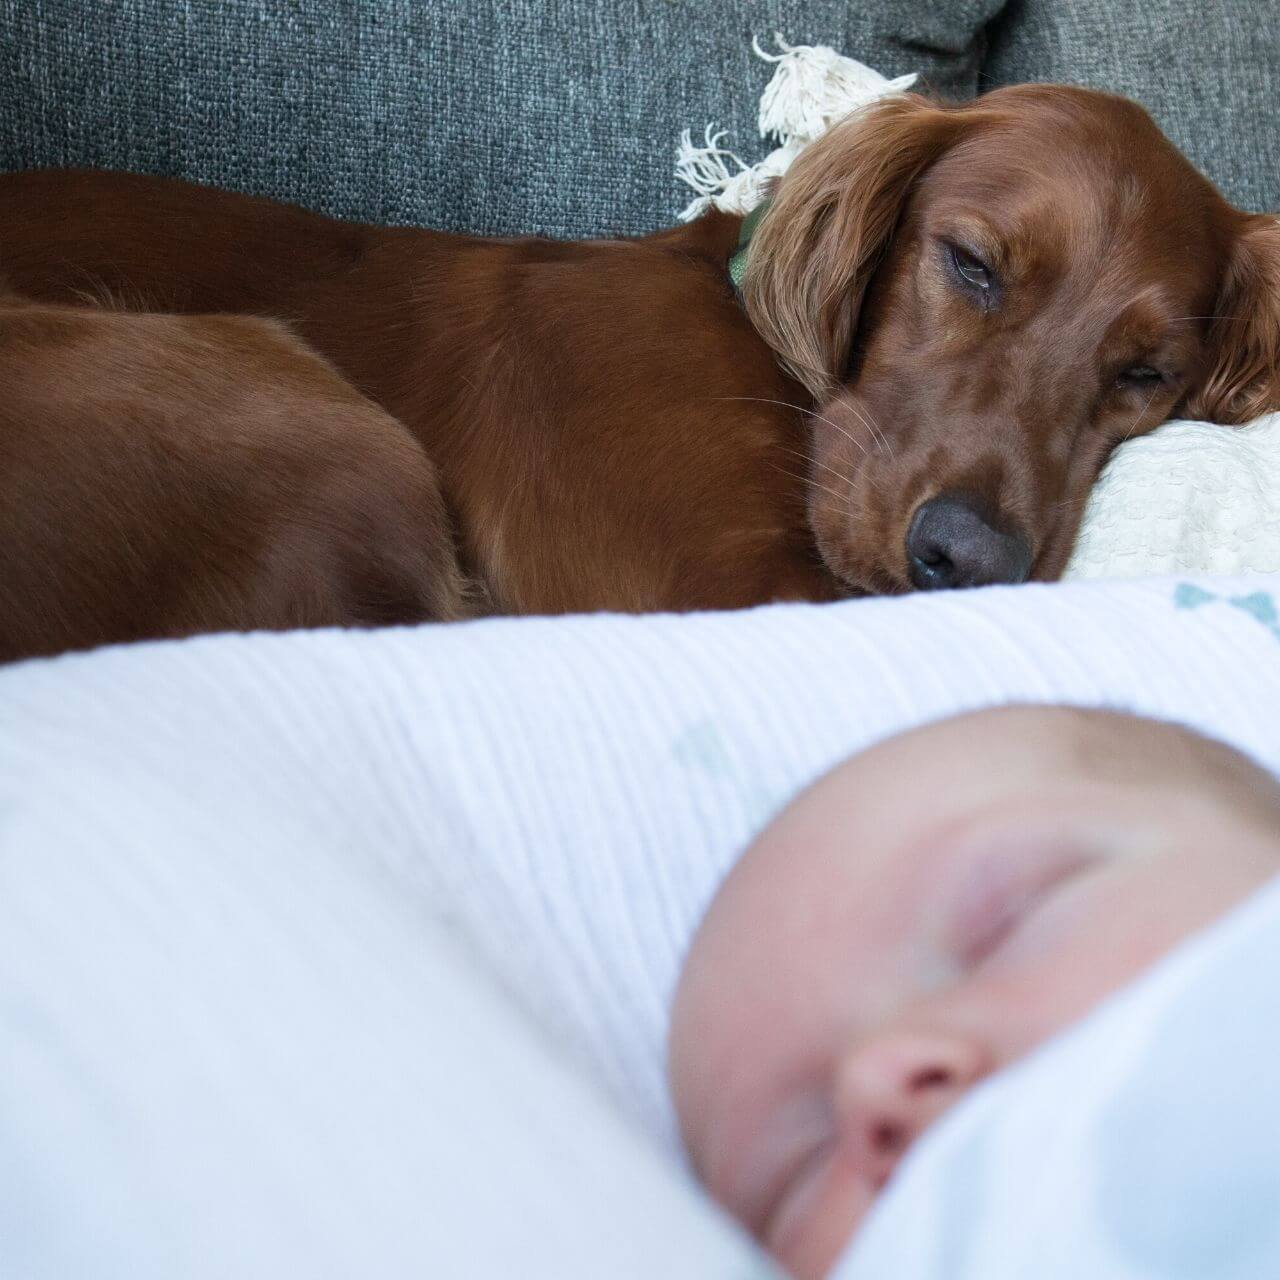 Dog and a baby asleep